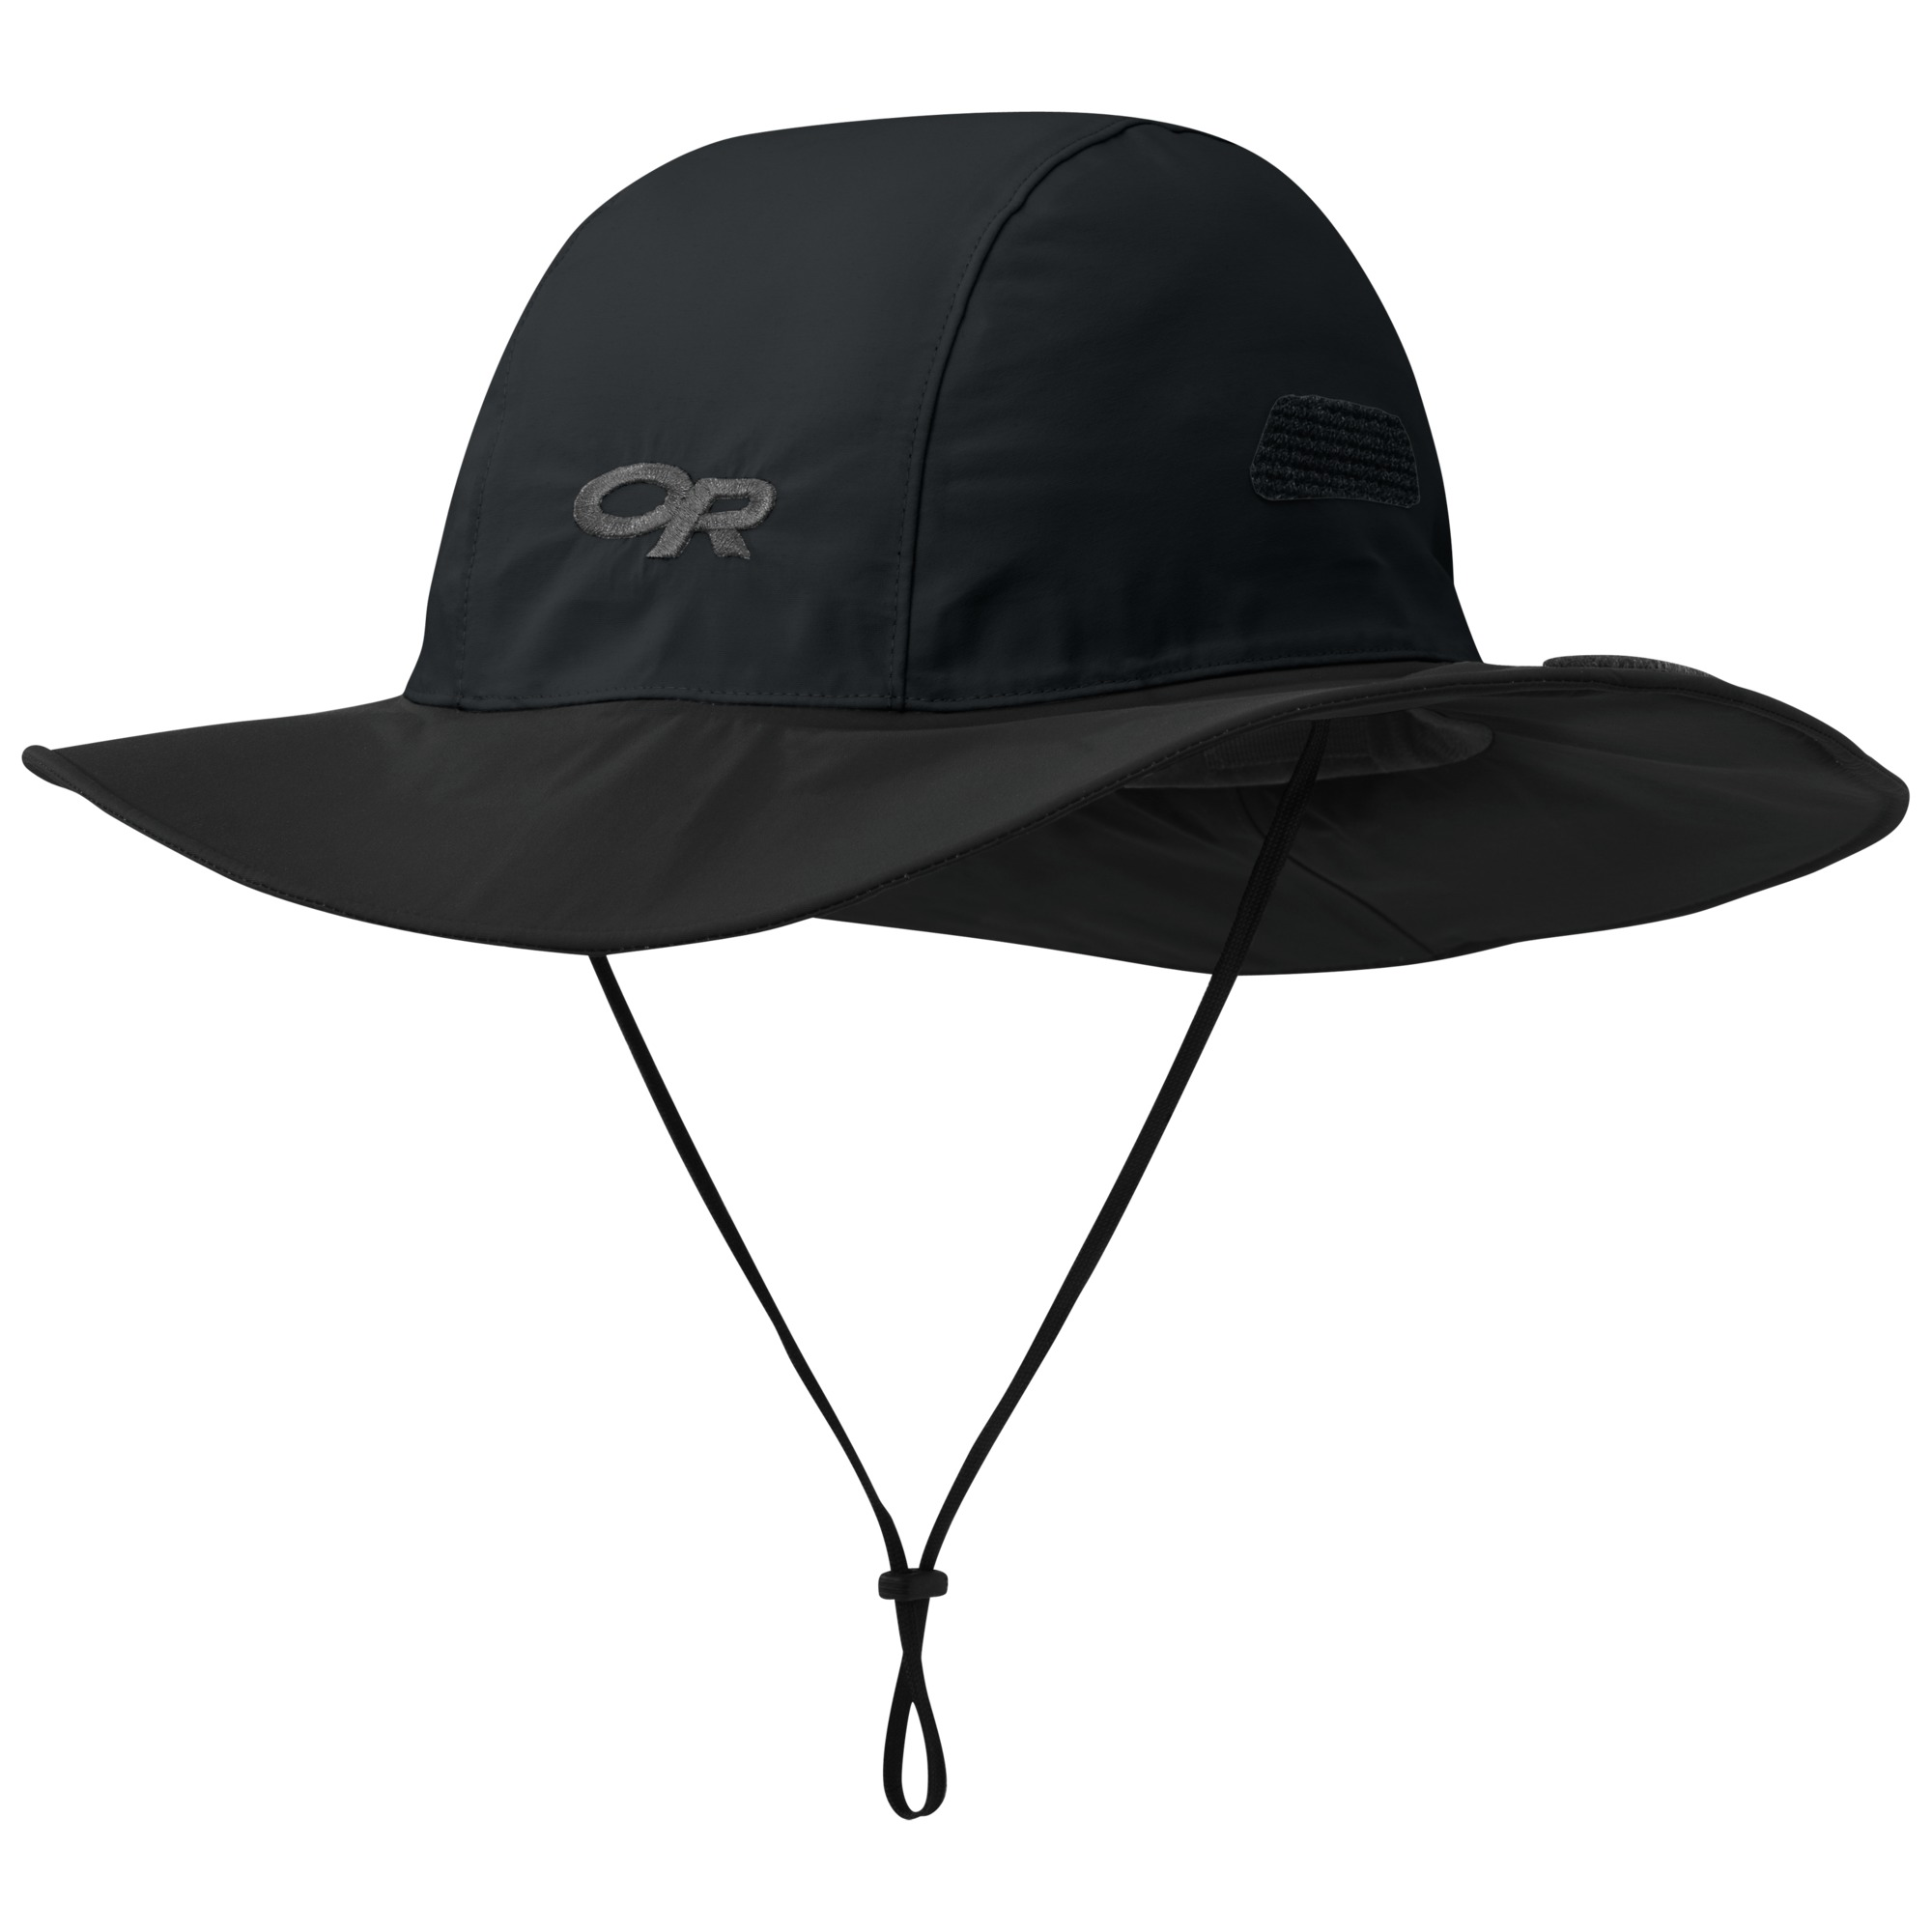 Outdoor Research - OR Seattle Sombrero - black - M 243505